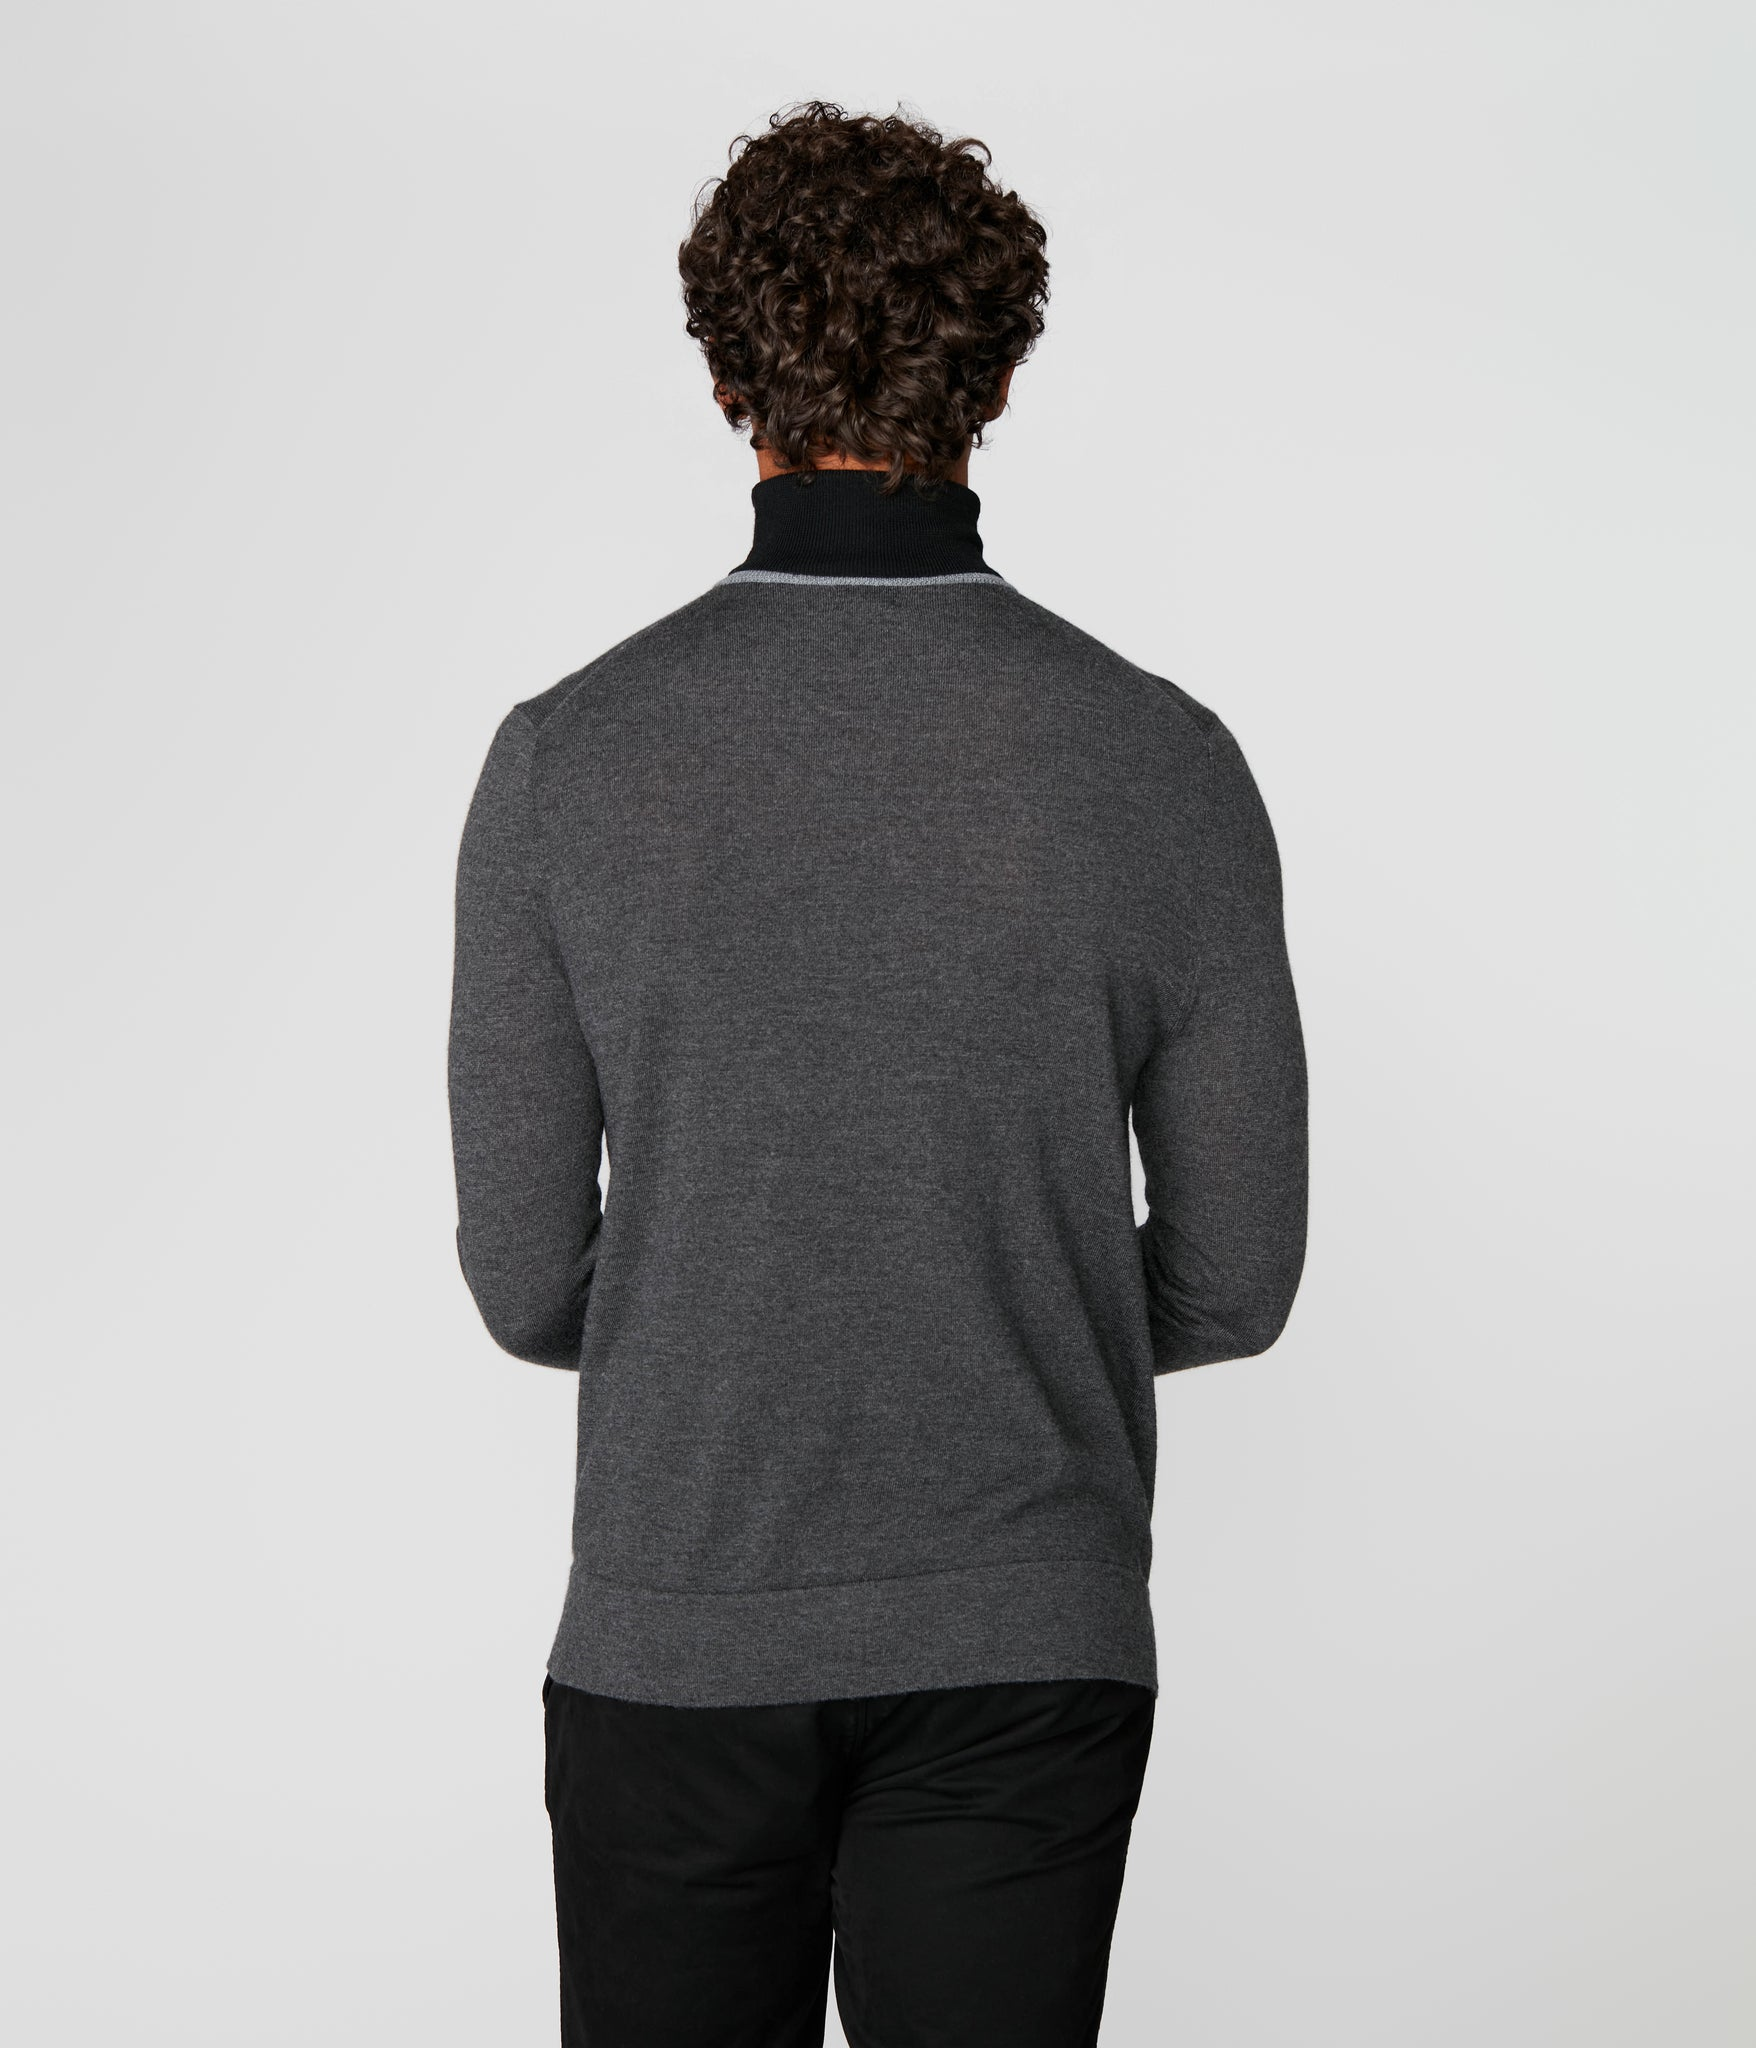 Icon Turtleneck in Merino Wool - Charcoal Heather